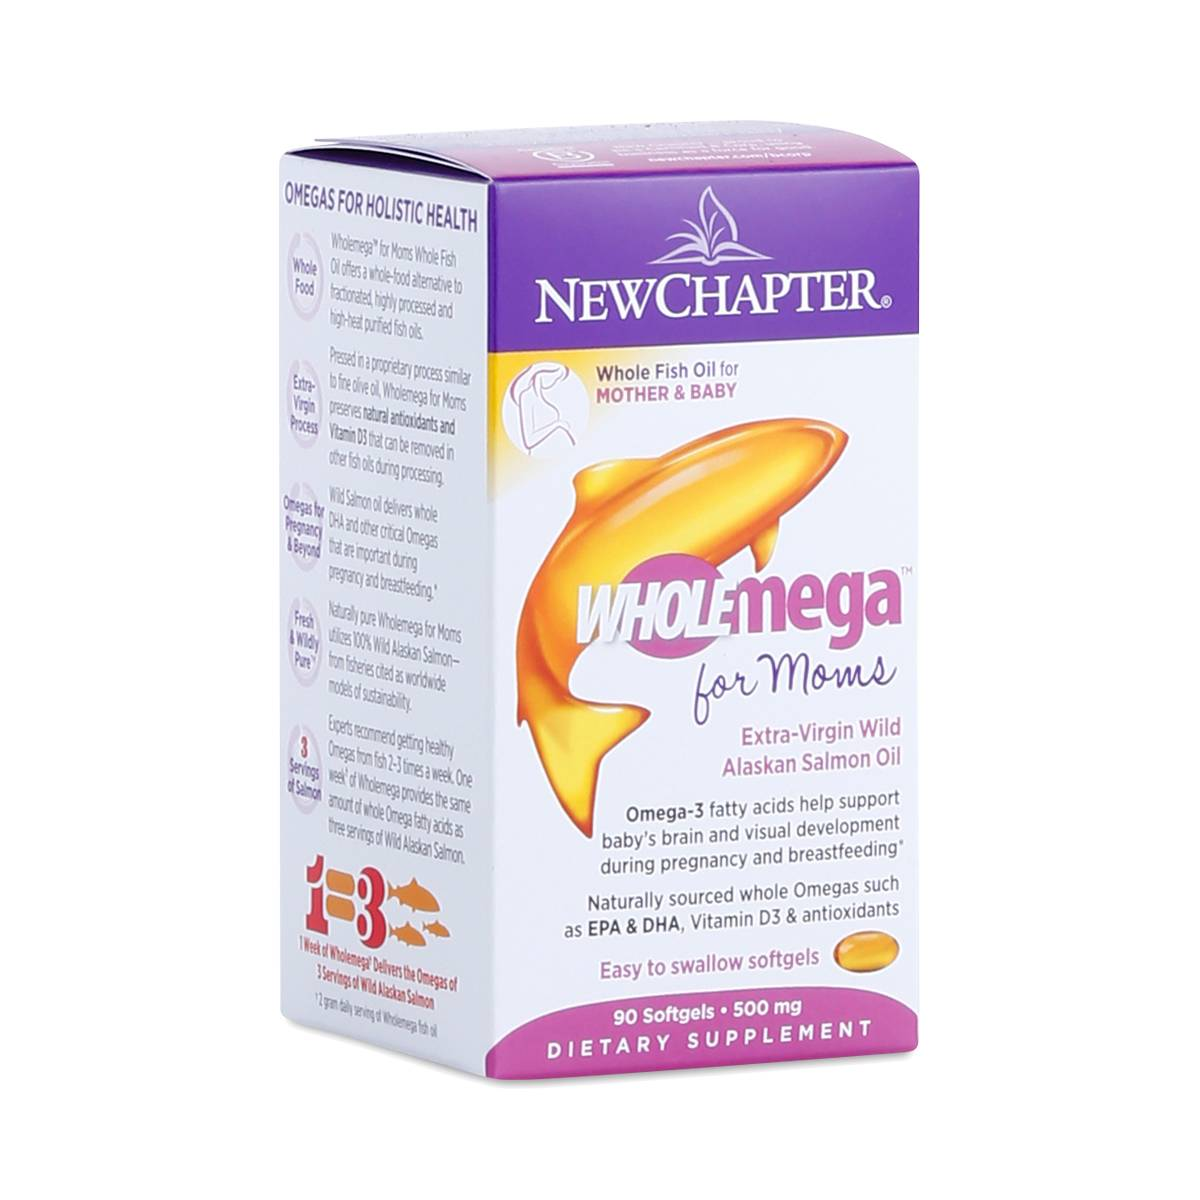 Wholemega prenatal fish oil by new chapter thrive market for New chapter fish oil